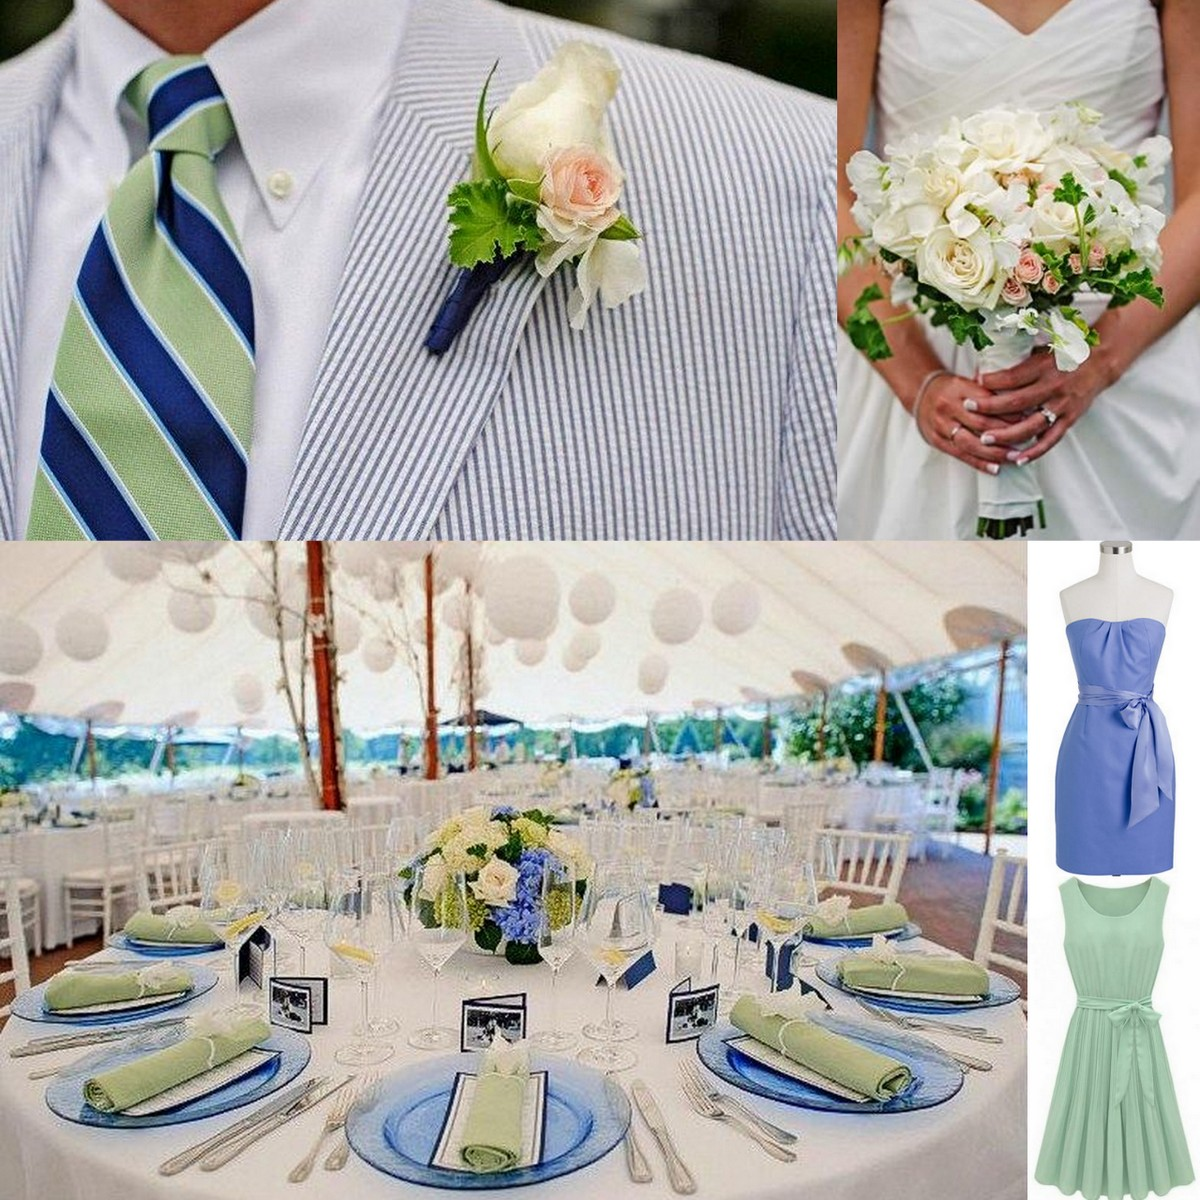 Featured image for 'Inspiration:Seafoam Green & Sky Blue: Real Wedding: Lisa Sammons Events' article